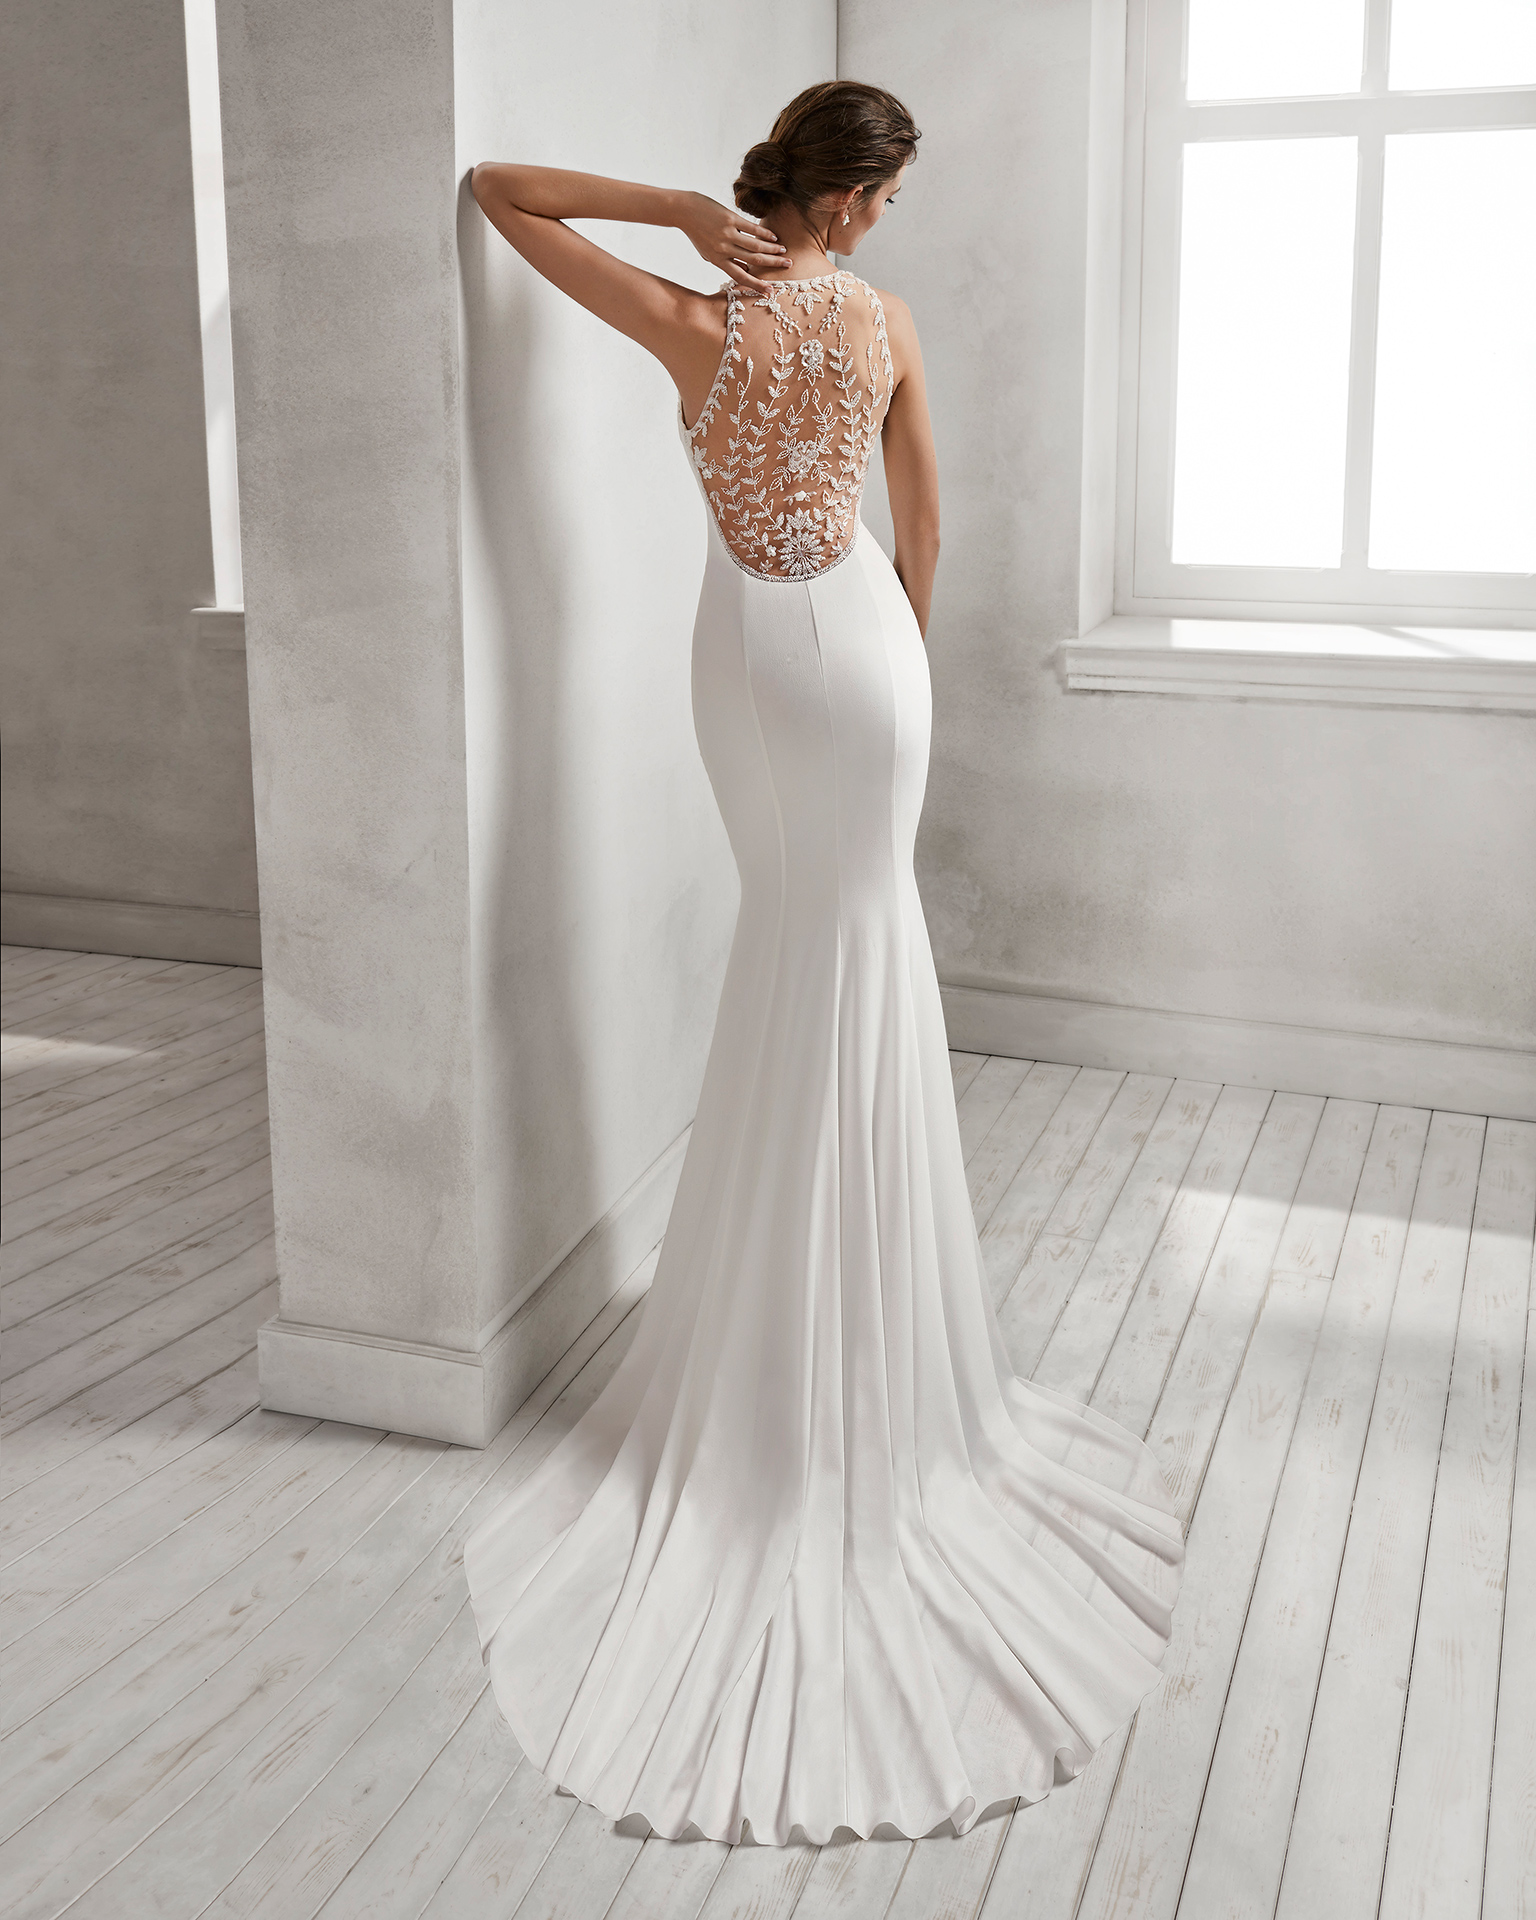 Mermaid-style crepe Georgette wedding dress with halter neckline and beaded back.